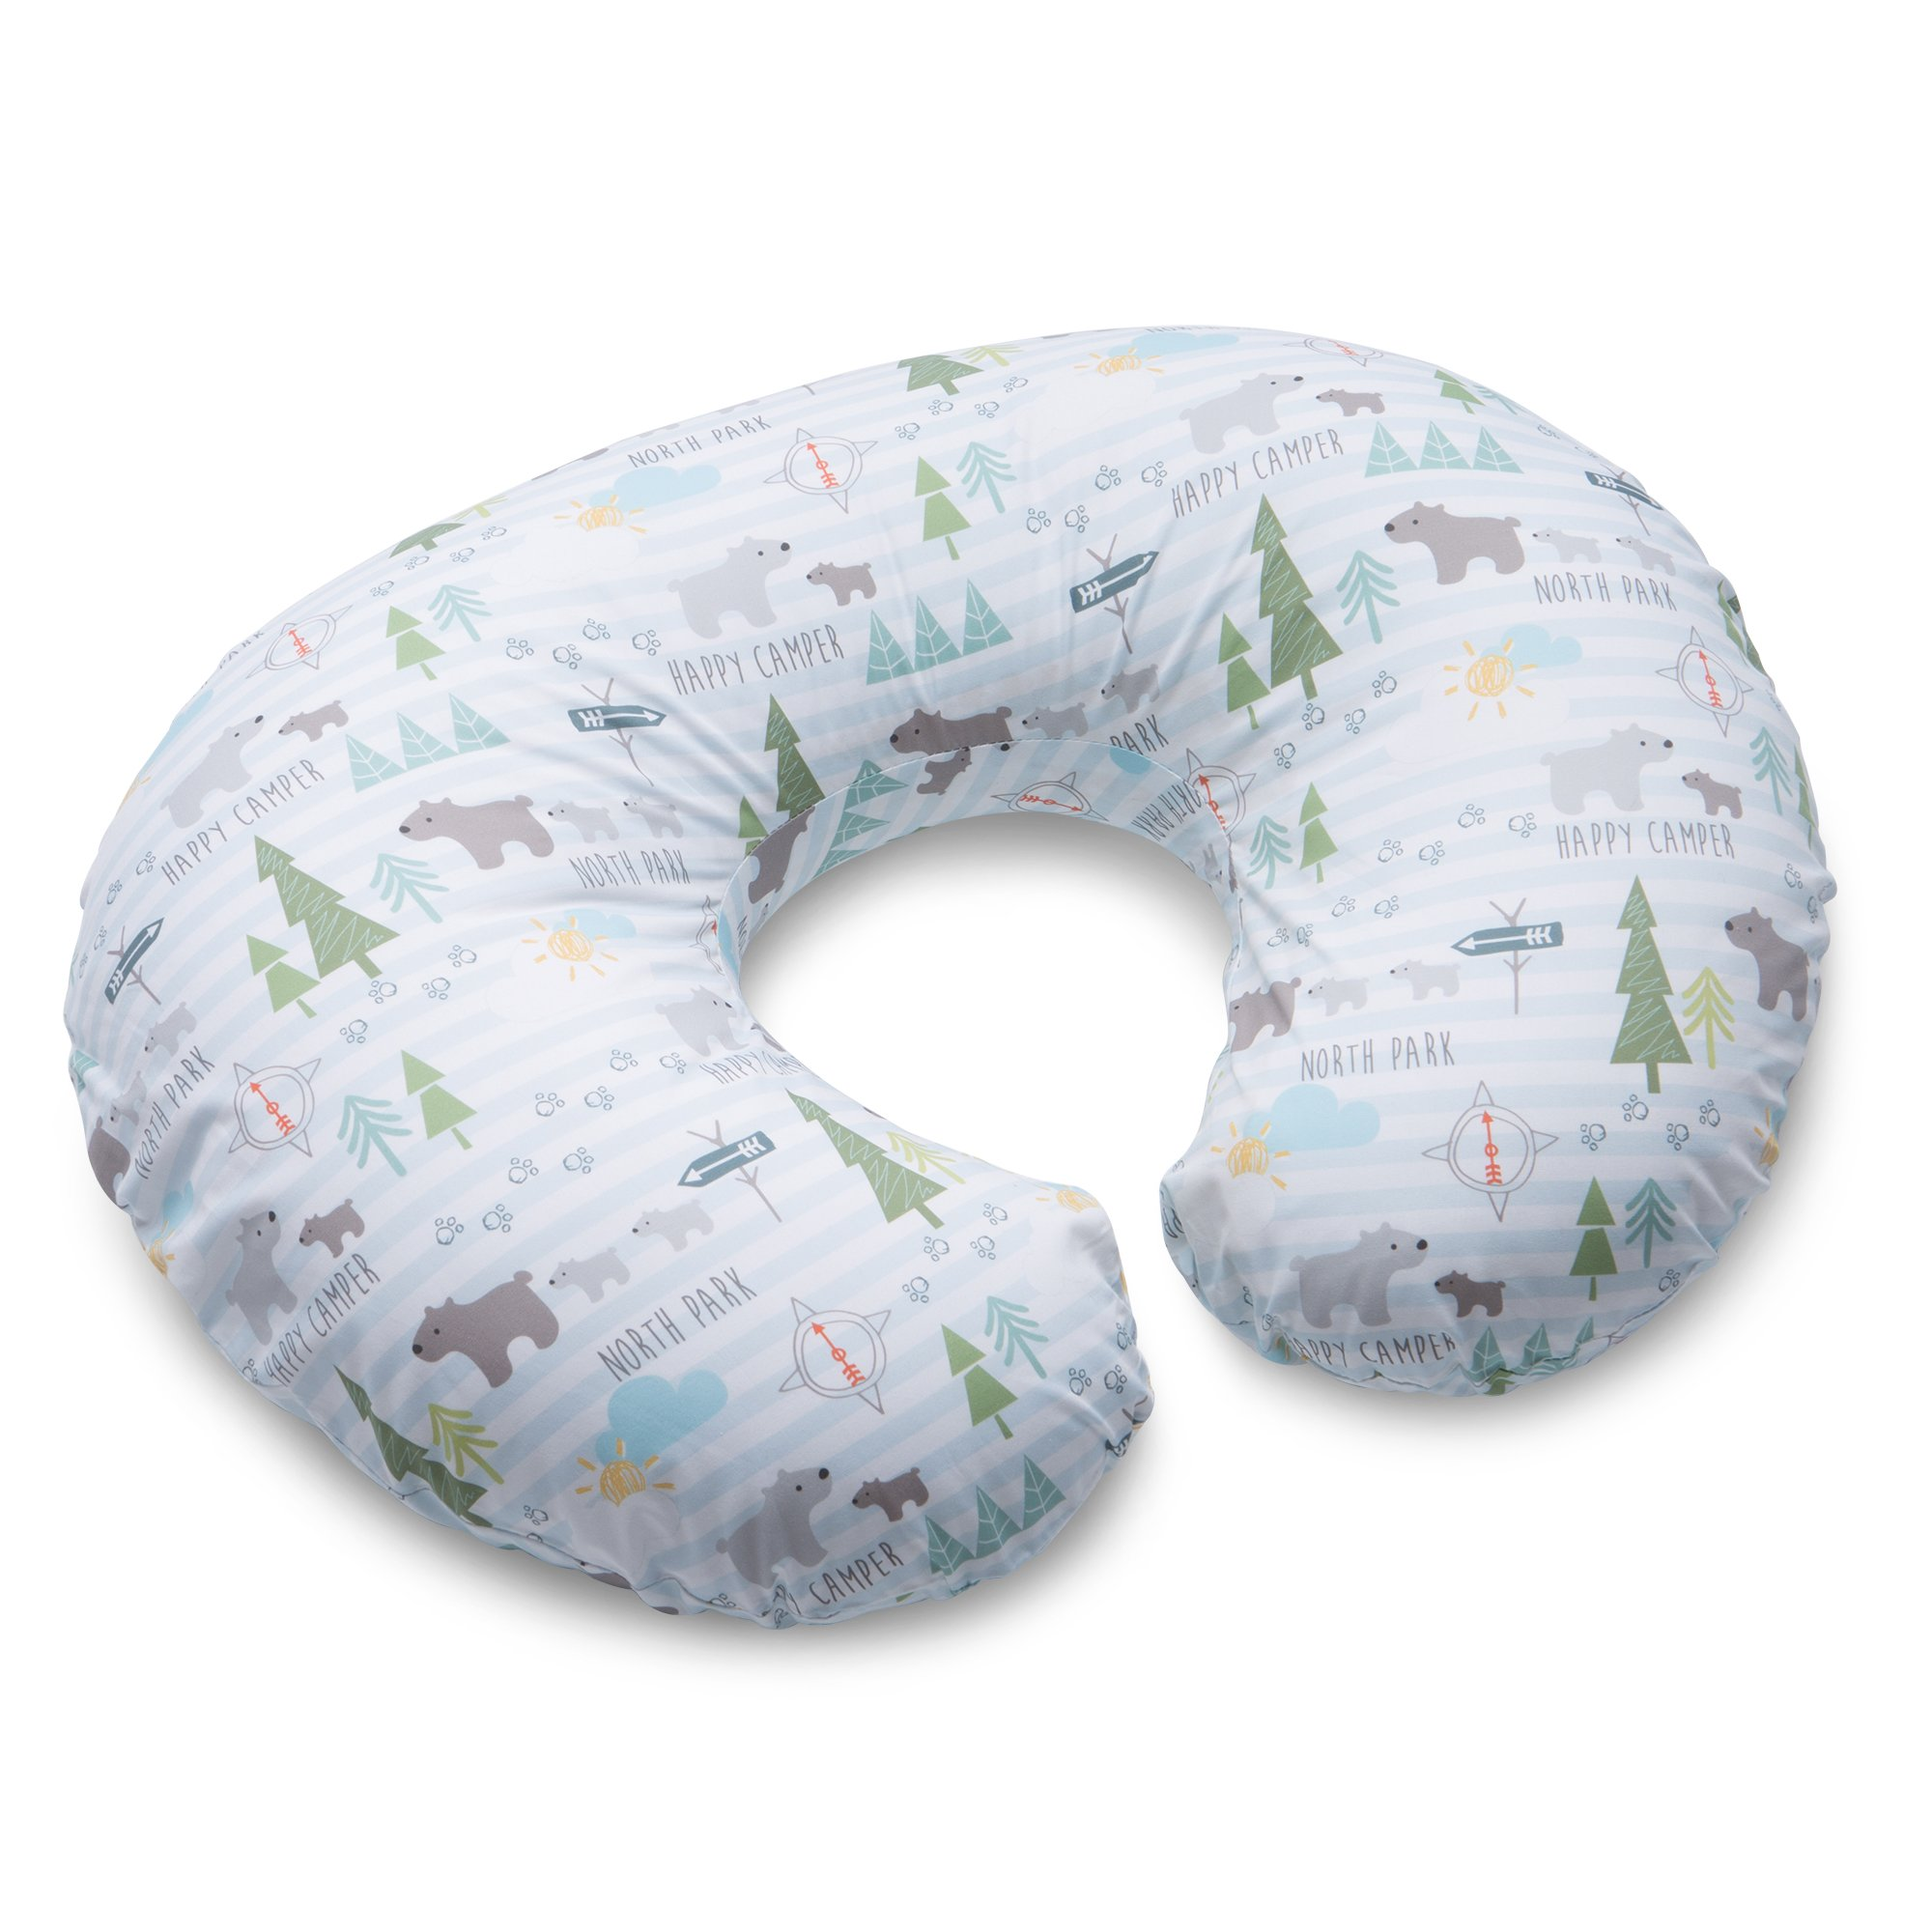 Boppy Original Nursing Pillow and Positioner, North Park, Cotton Blend Fabric with allover fashion by Boppy